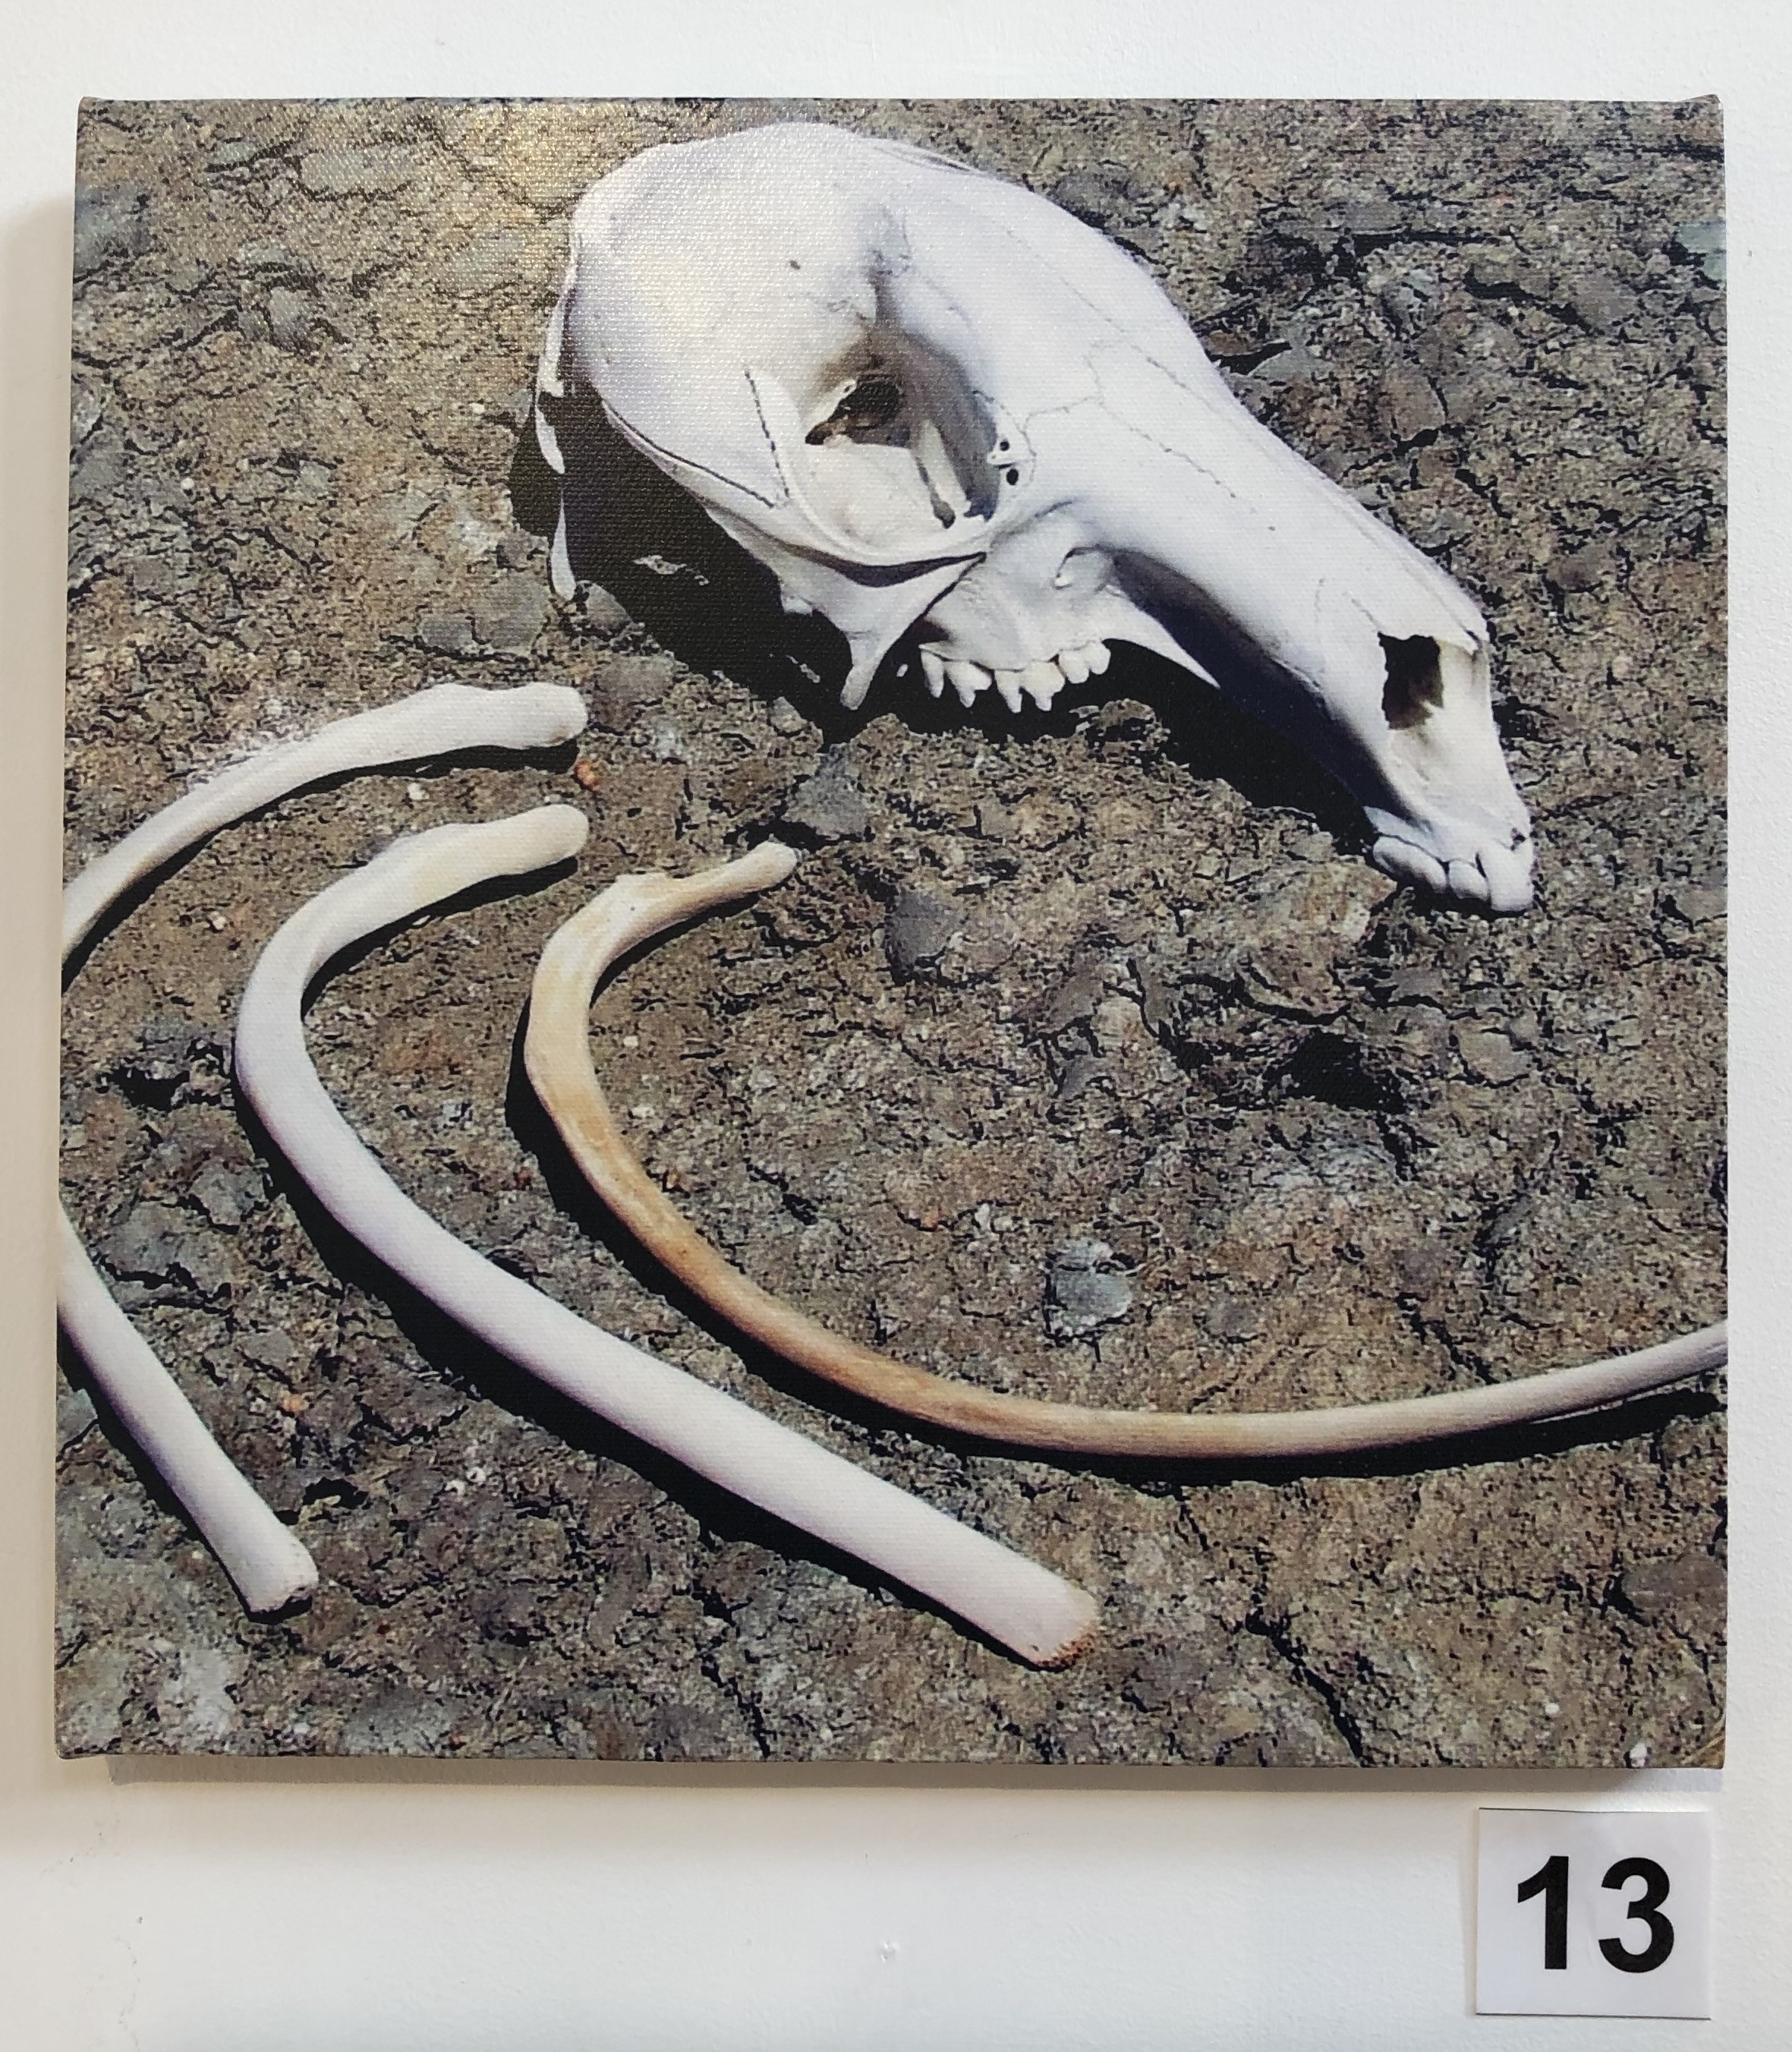 """Skull and Rib Bones - Kangaroo"" by Lisa Timms Stevens"